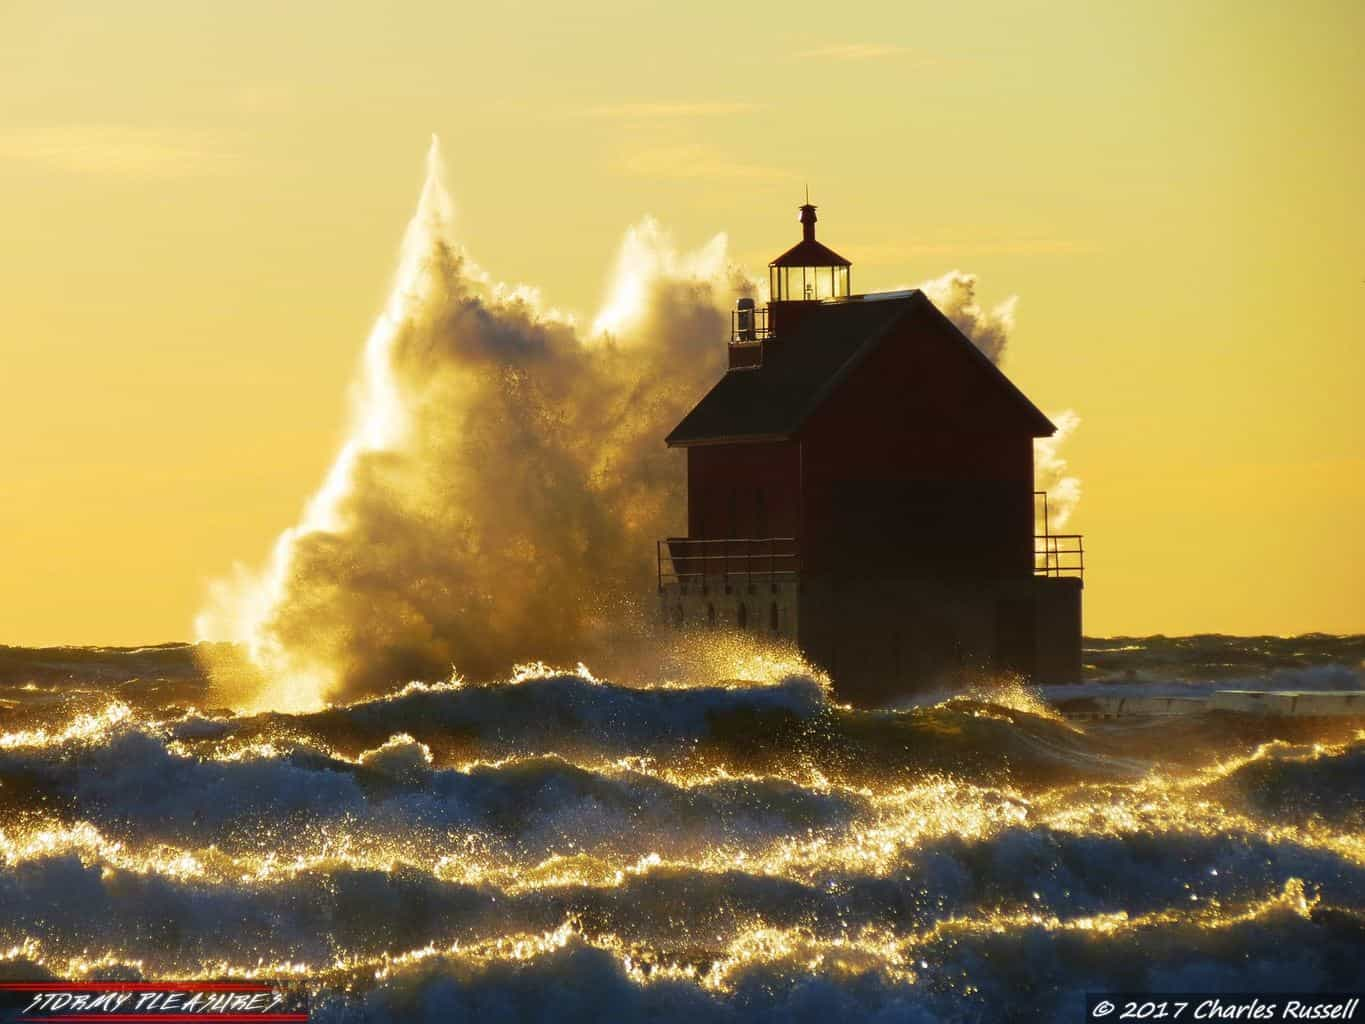 Absolutely amazing day at Grand Haven State Park in Michigan!!! Just coming into the golden hour on this wildly windy day!! The waves were fantastic!